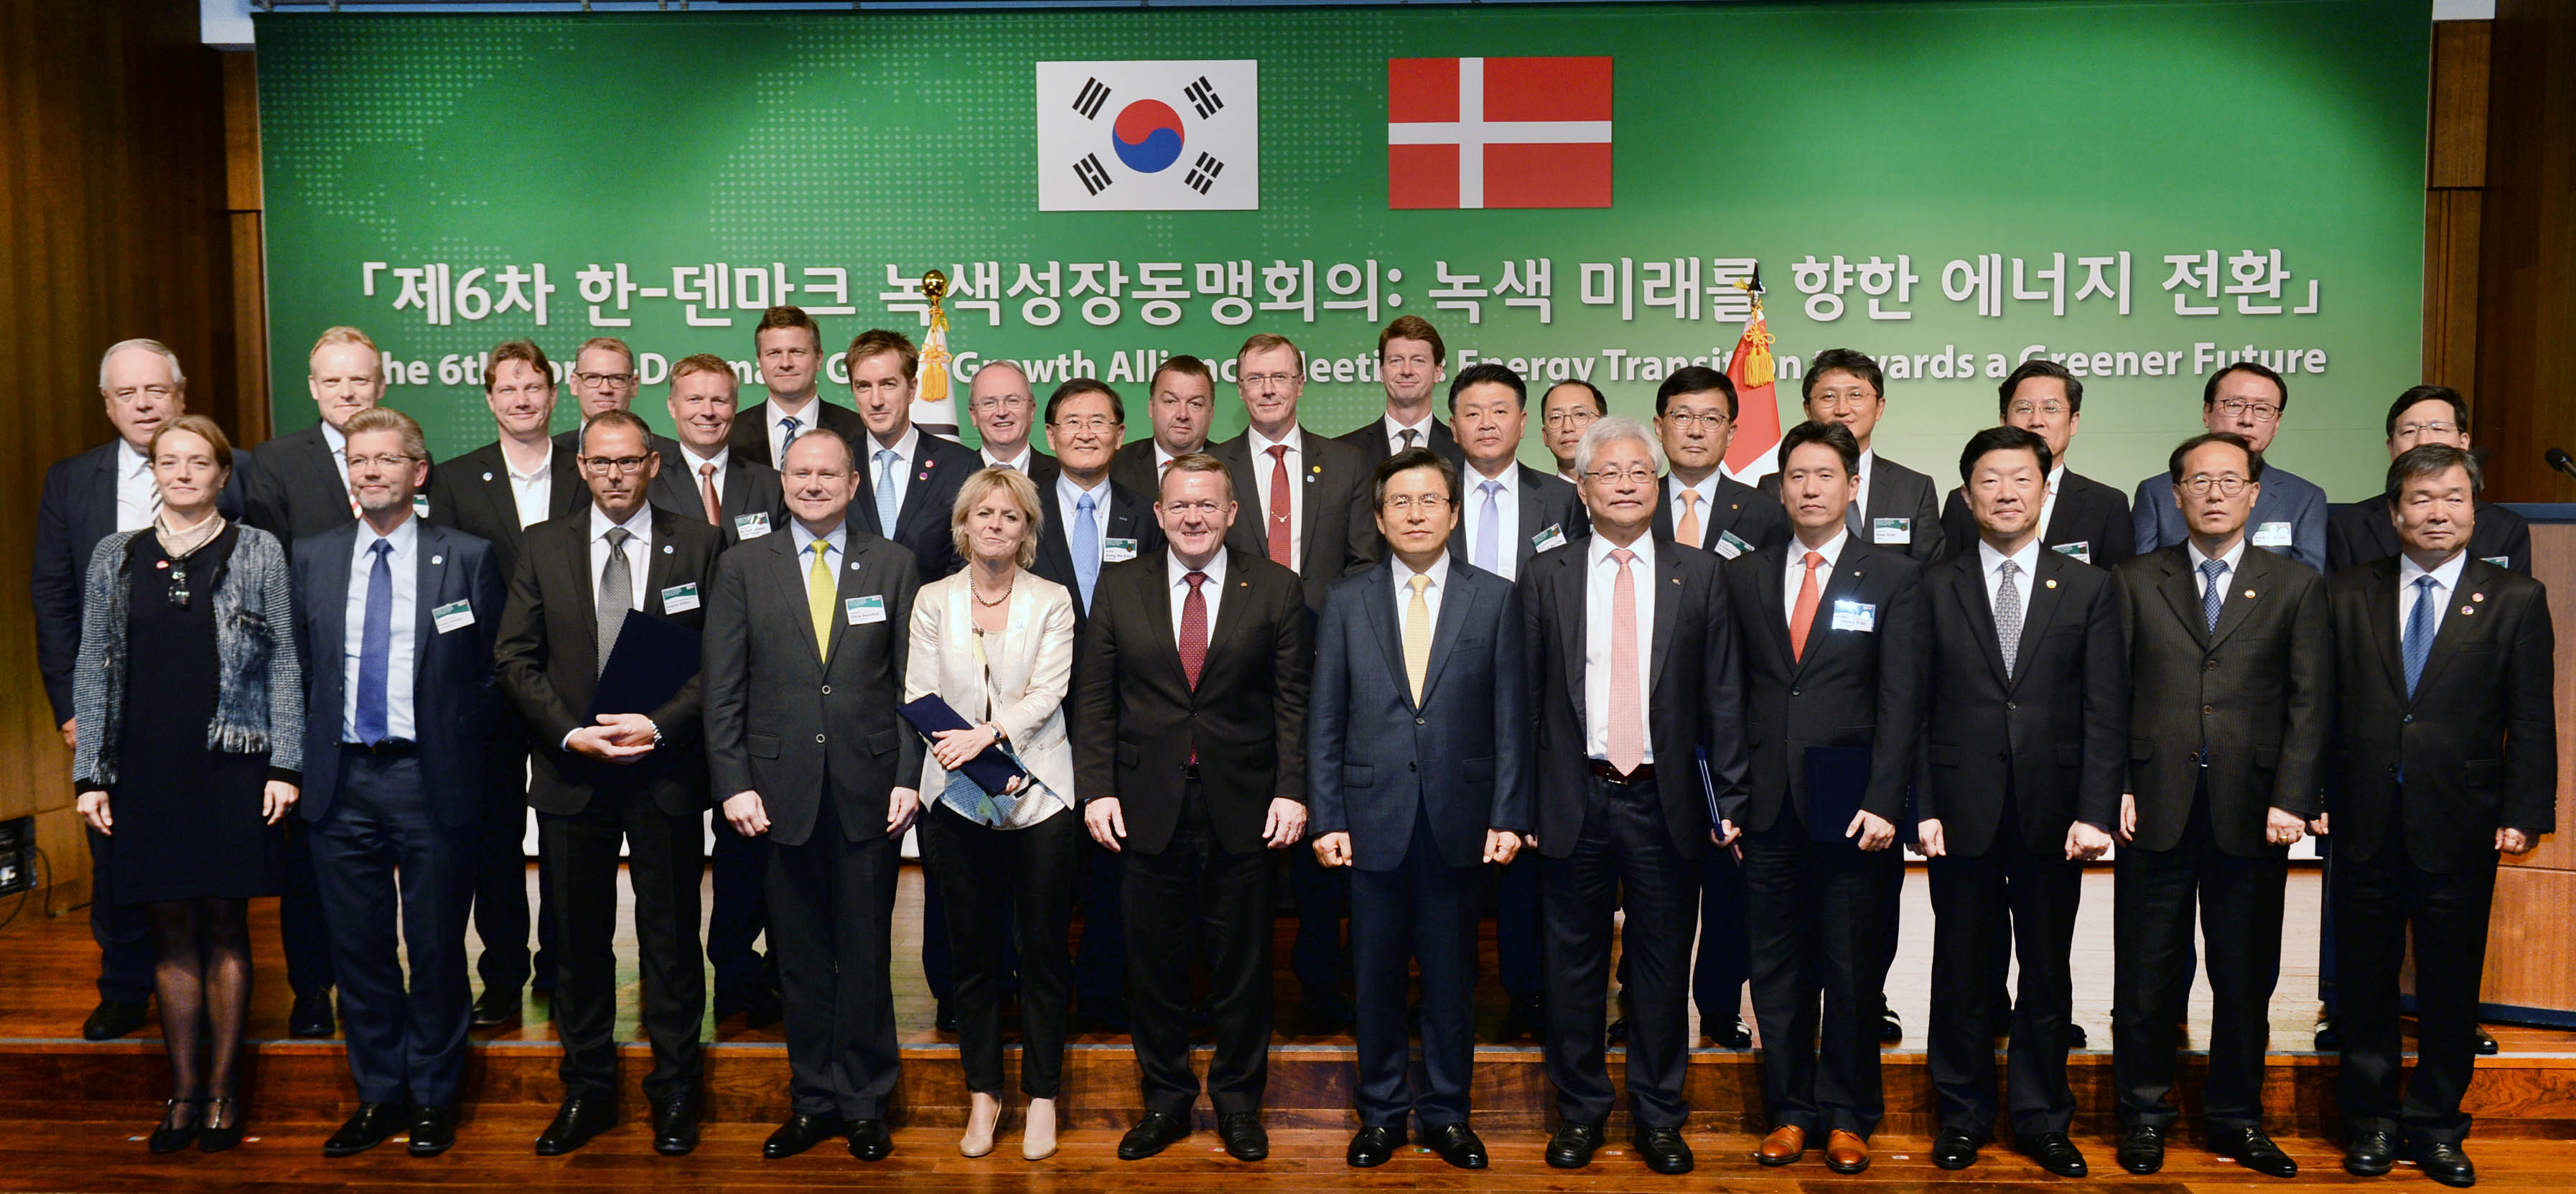 Korea, Denmark join heads to discuss green growth